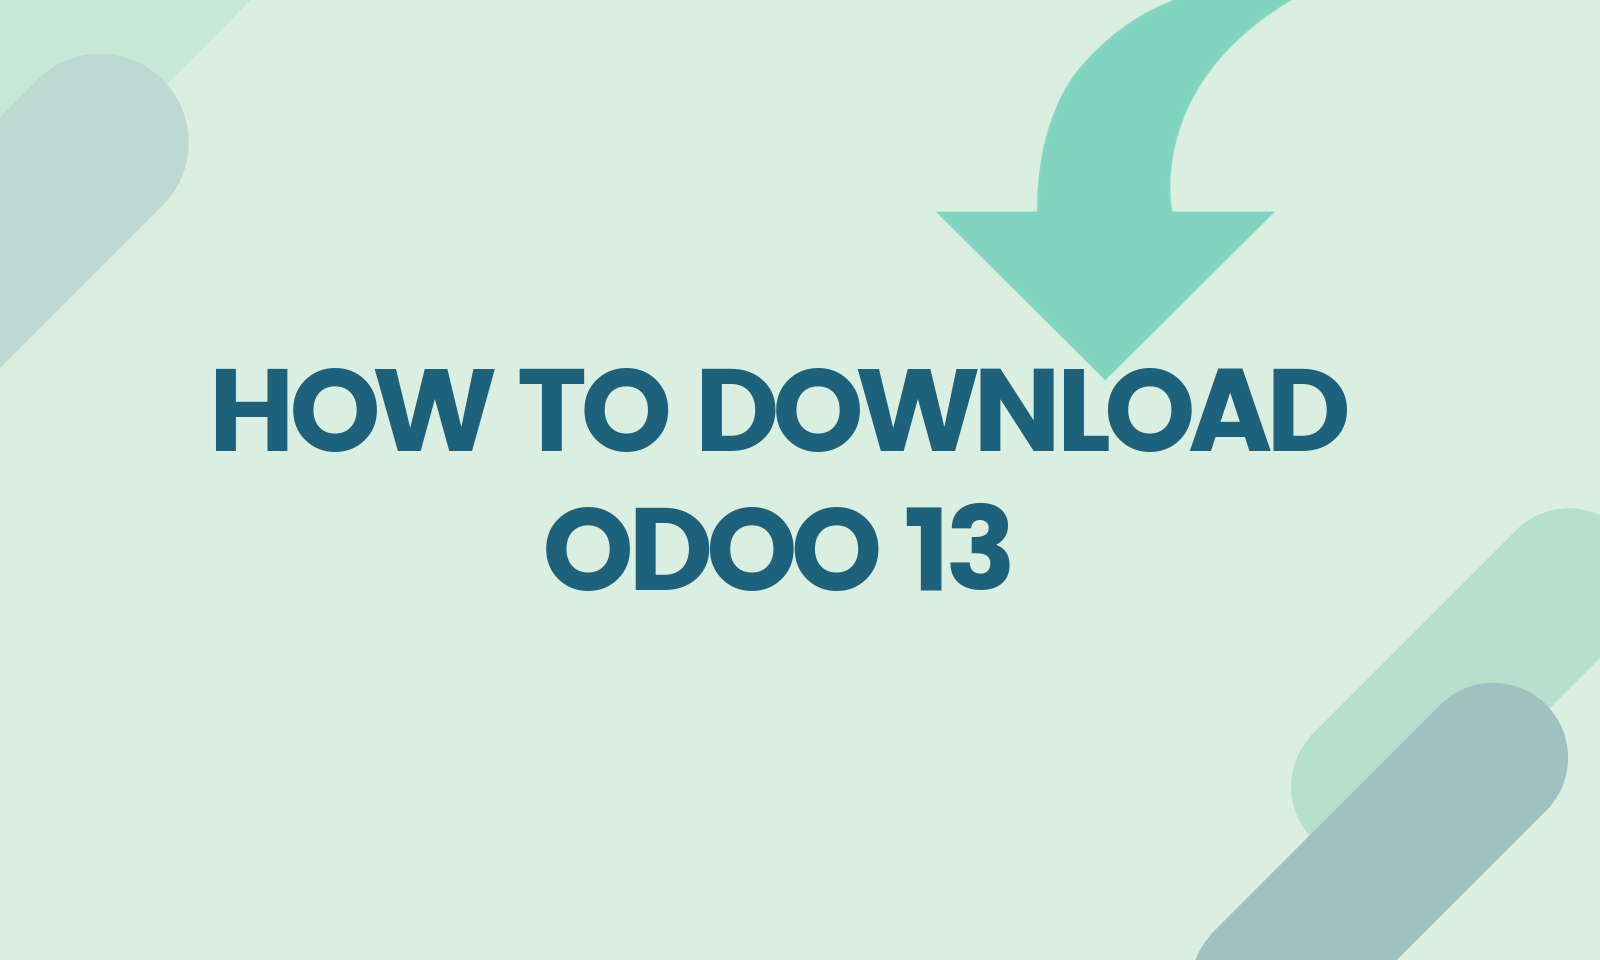 how-to-download-odoo-13-odooblogs